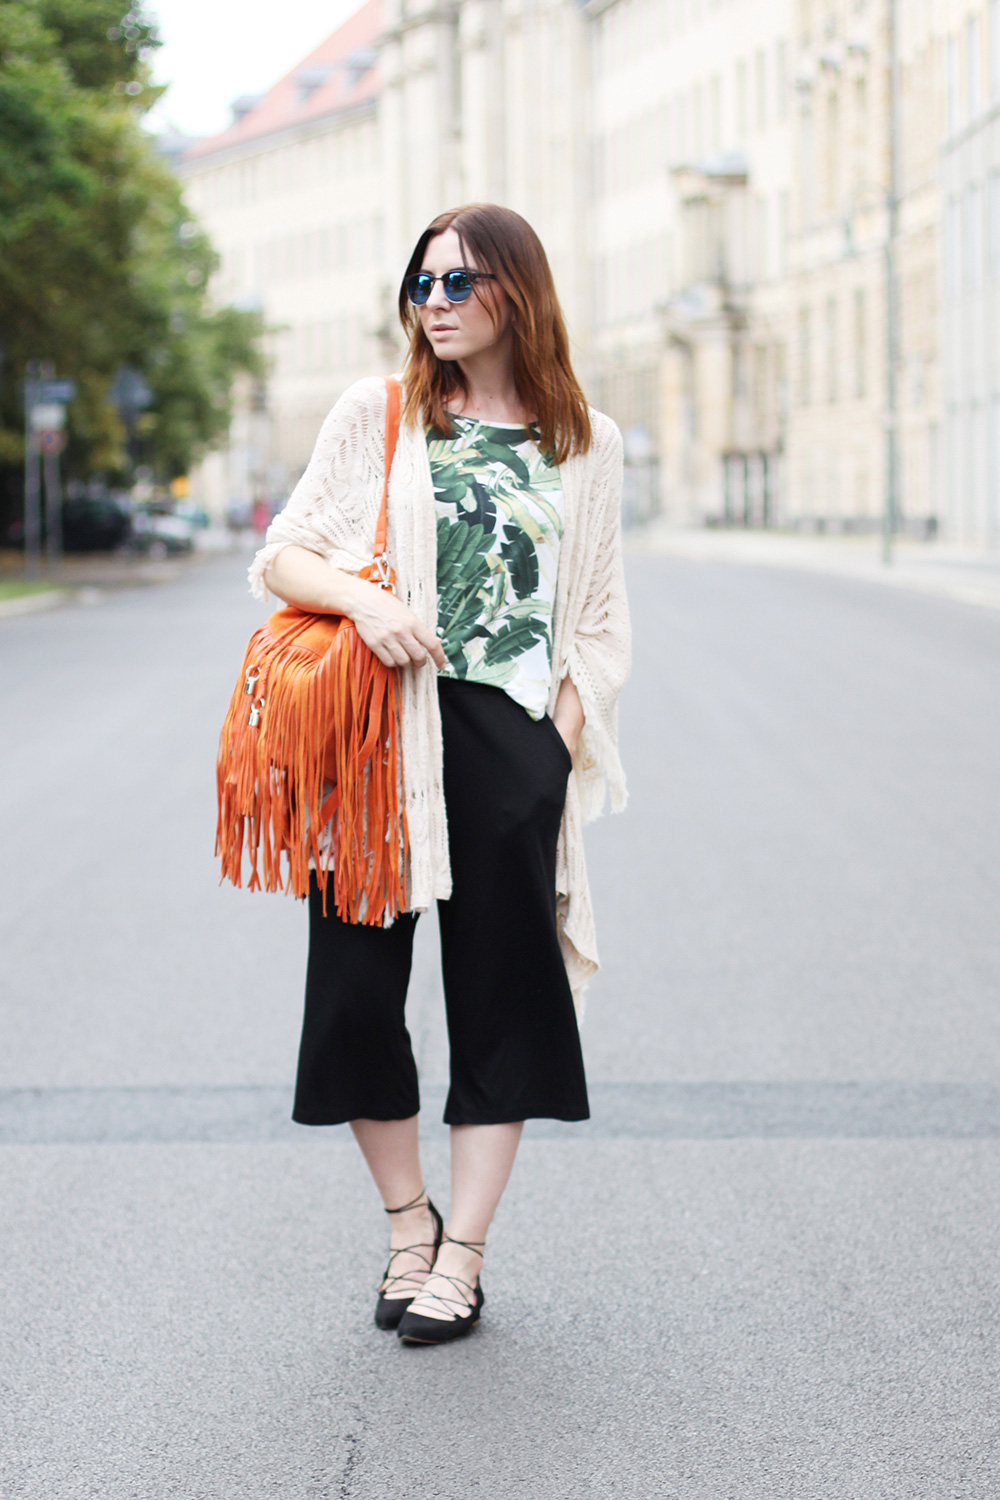 who is mocca, blogger, tirol, tirolblog, innsbruck, austrianblogger, fashion week berlin, ss 2016, culotte kombiniere, strappy ballerinas, sarenza, bucket bag fringes orange river island, whoismocca.com